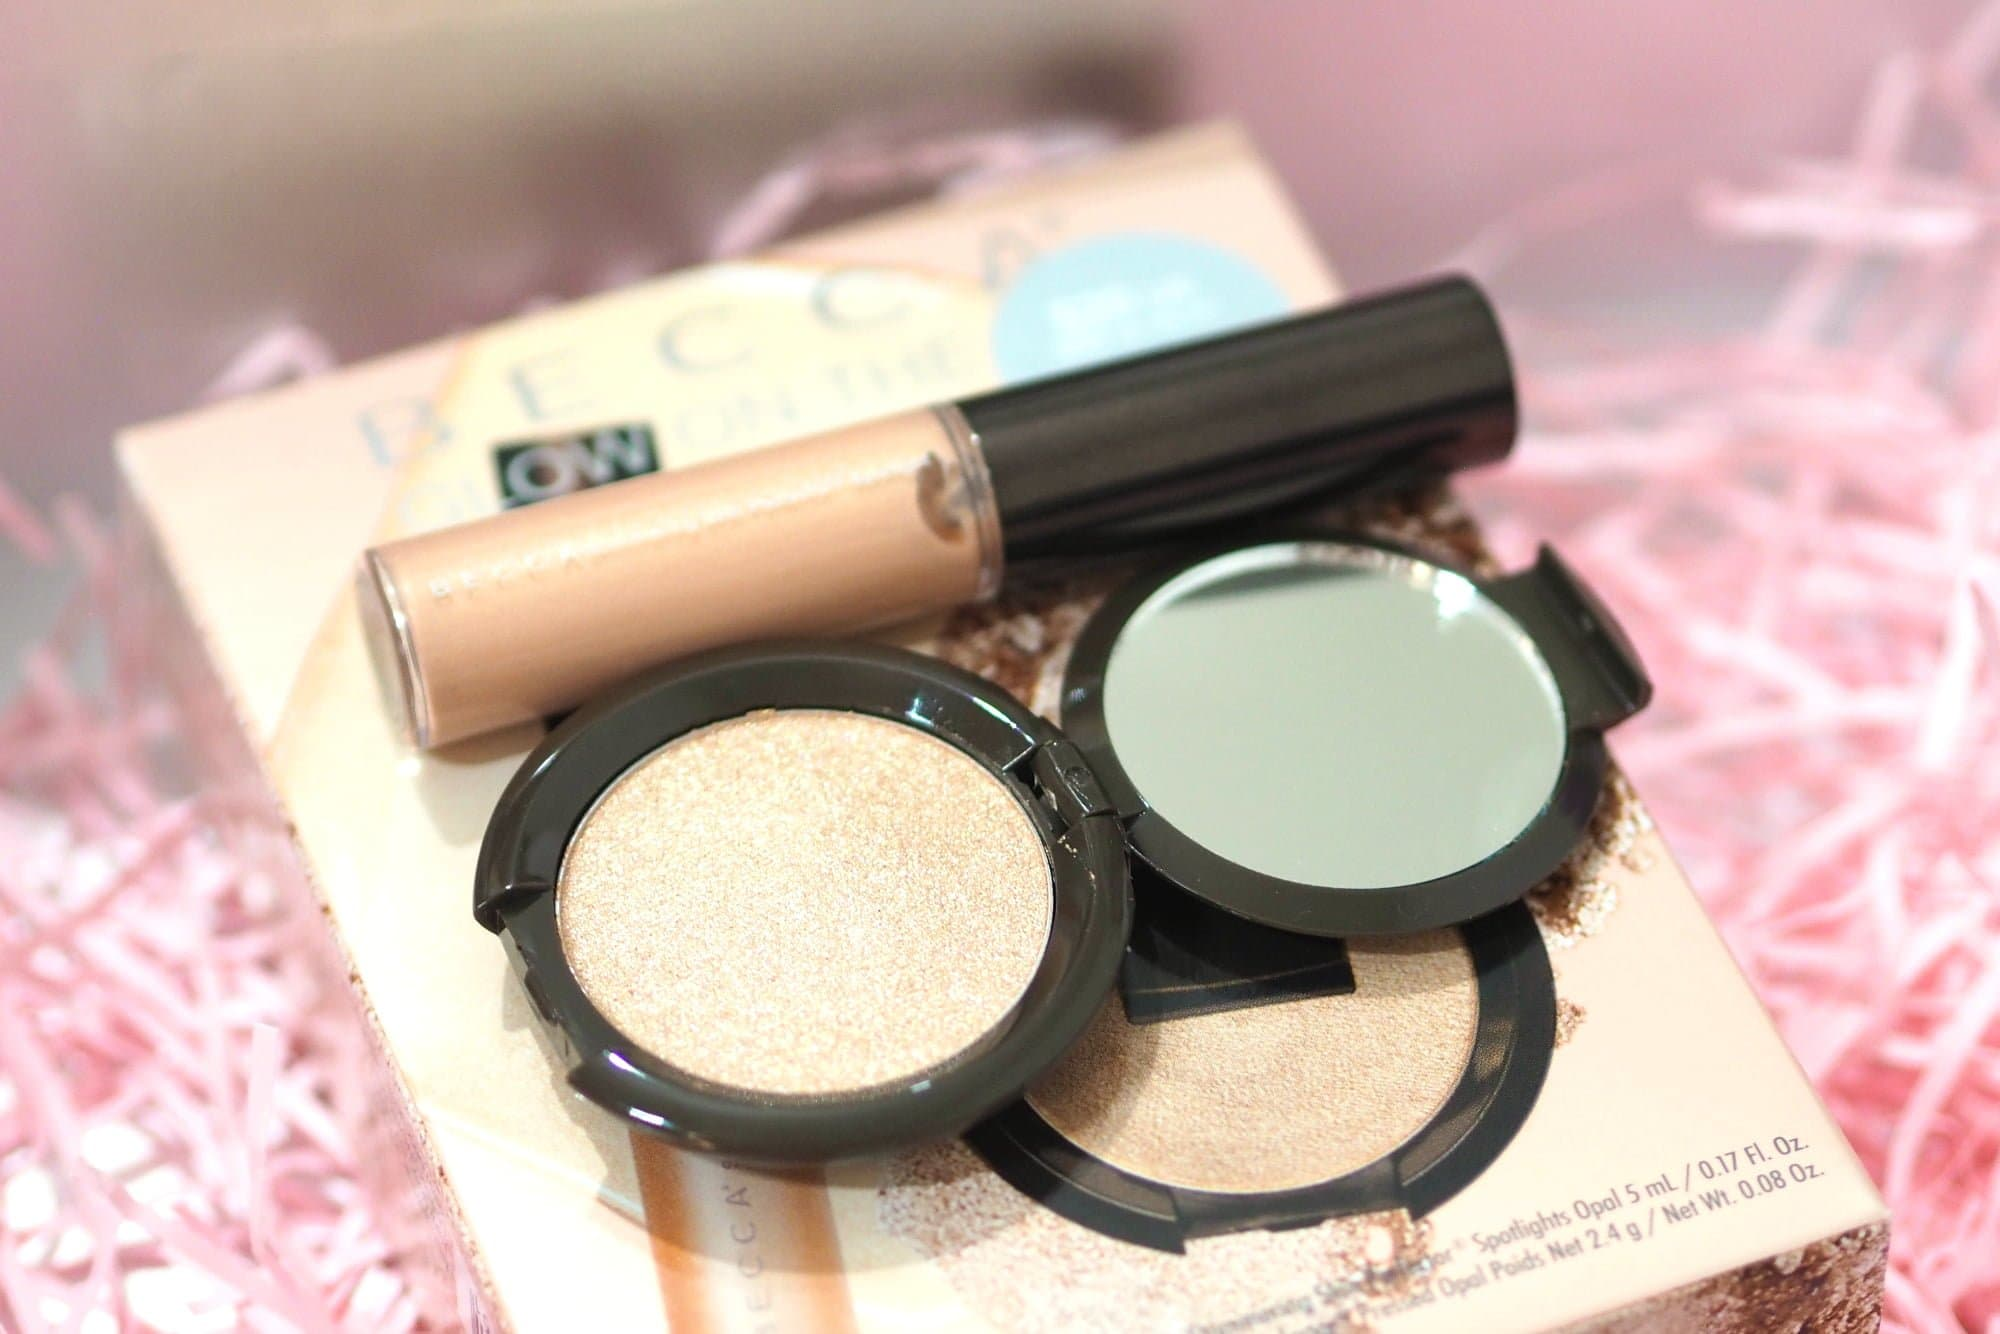 Look Incredible February Deluxe Beauty Box 2019 Unboxing and First Impressions ft Benefit, Becca, Lancome and Cargo